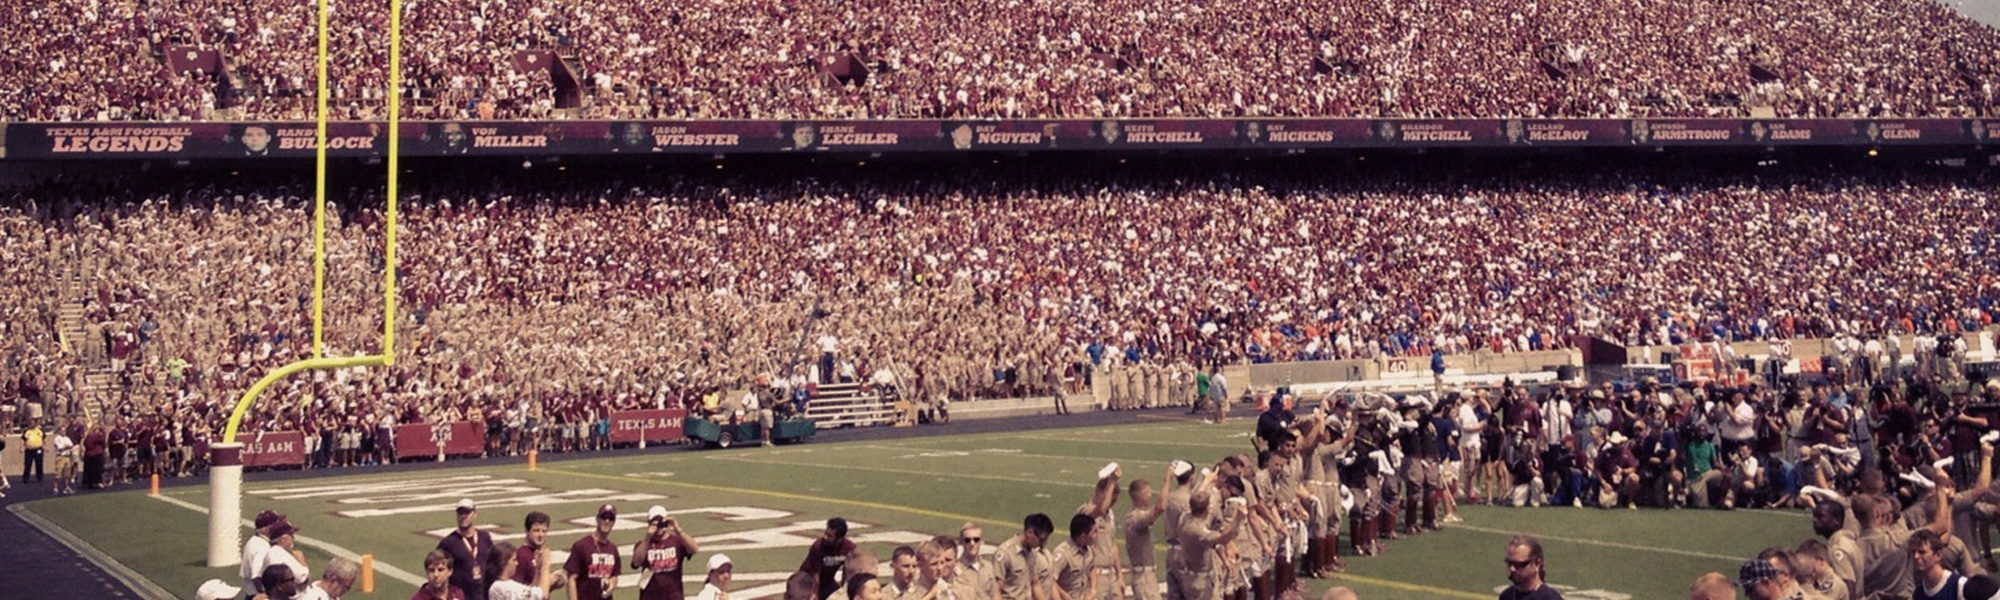 Texas A&M University - Kyle Field